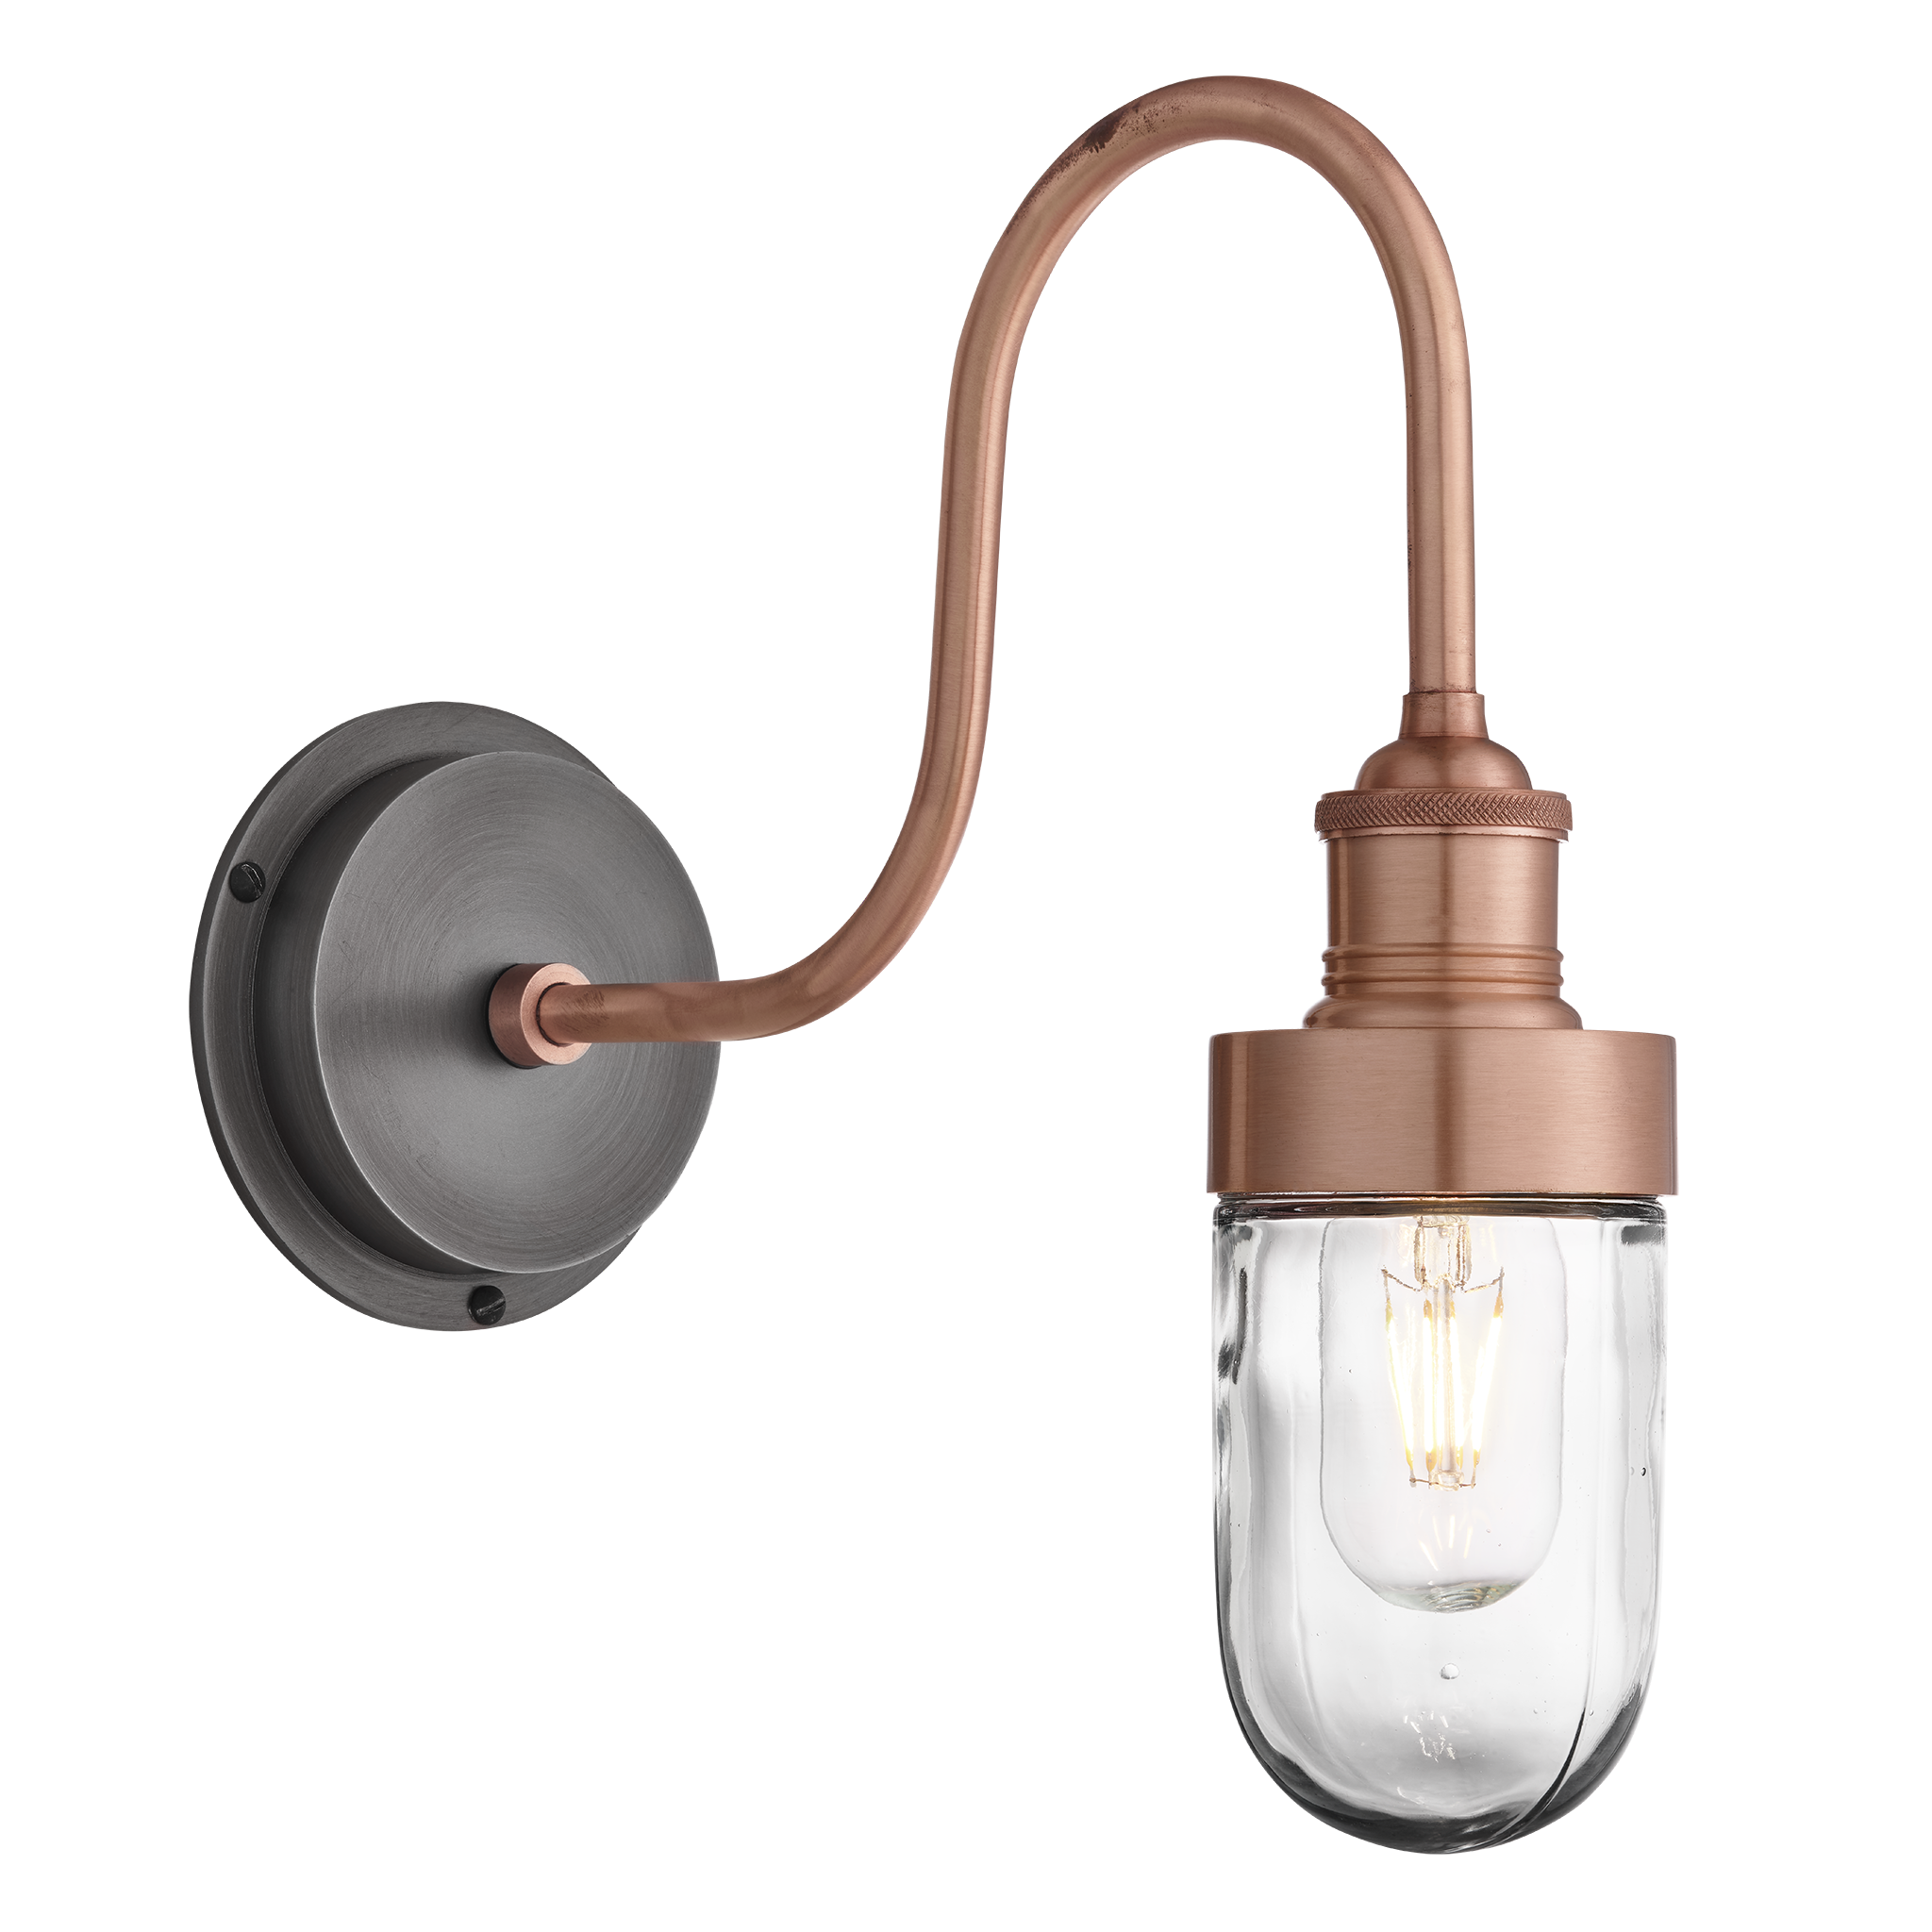 Stainless Steel Classic Retro Style Outdoor Wall Light Filament Style LED Lamp